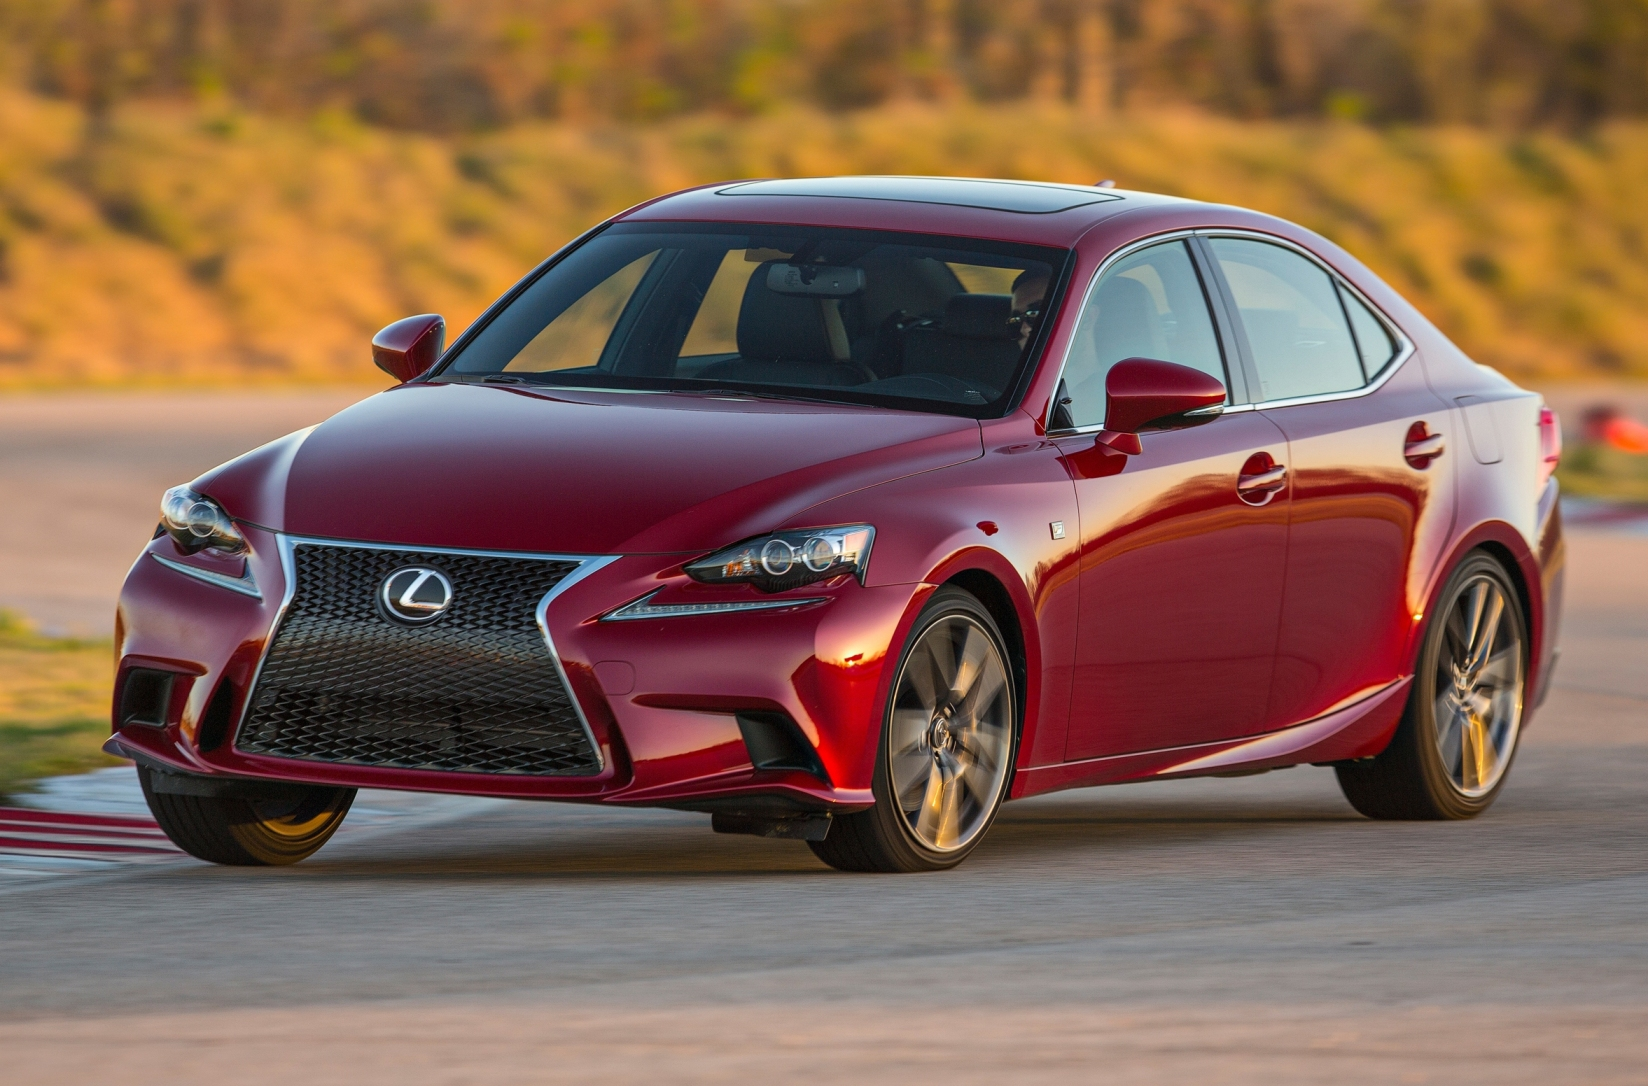 2014 lexus is 350 f sport 030. Black Bedroom Furniture Sets. Home Design Ideas